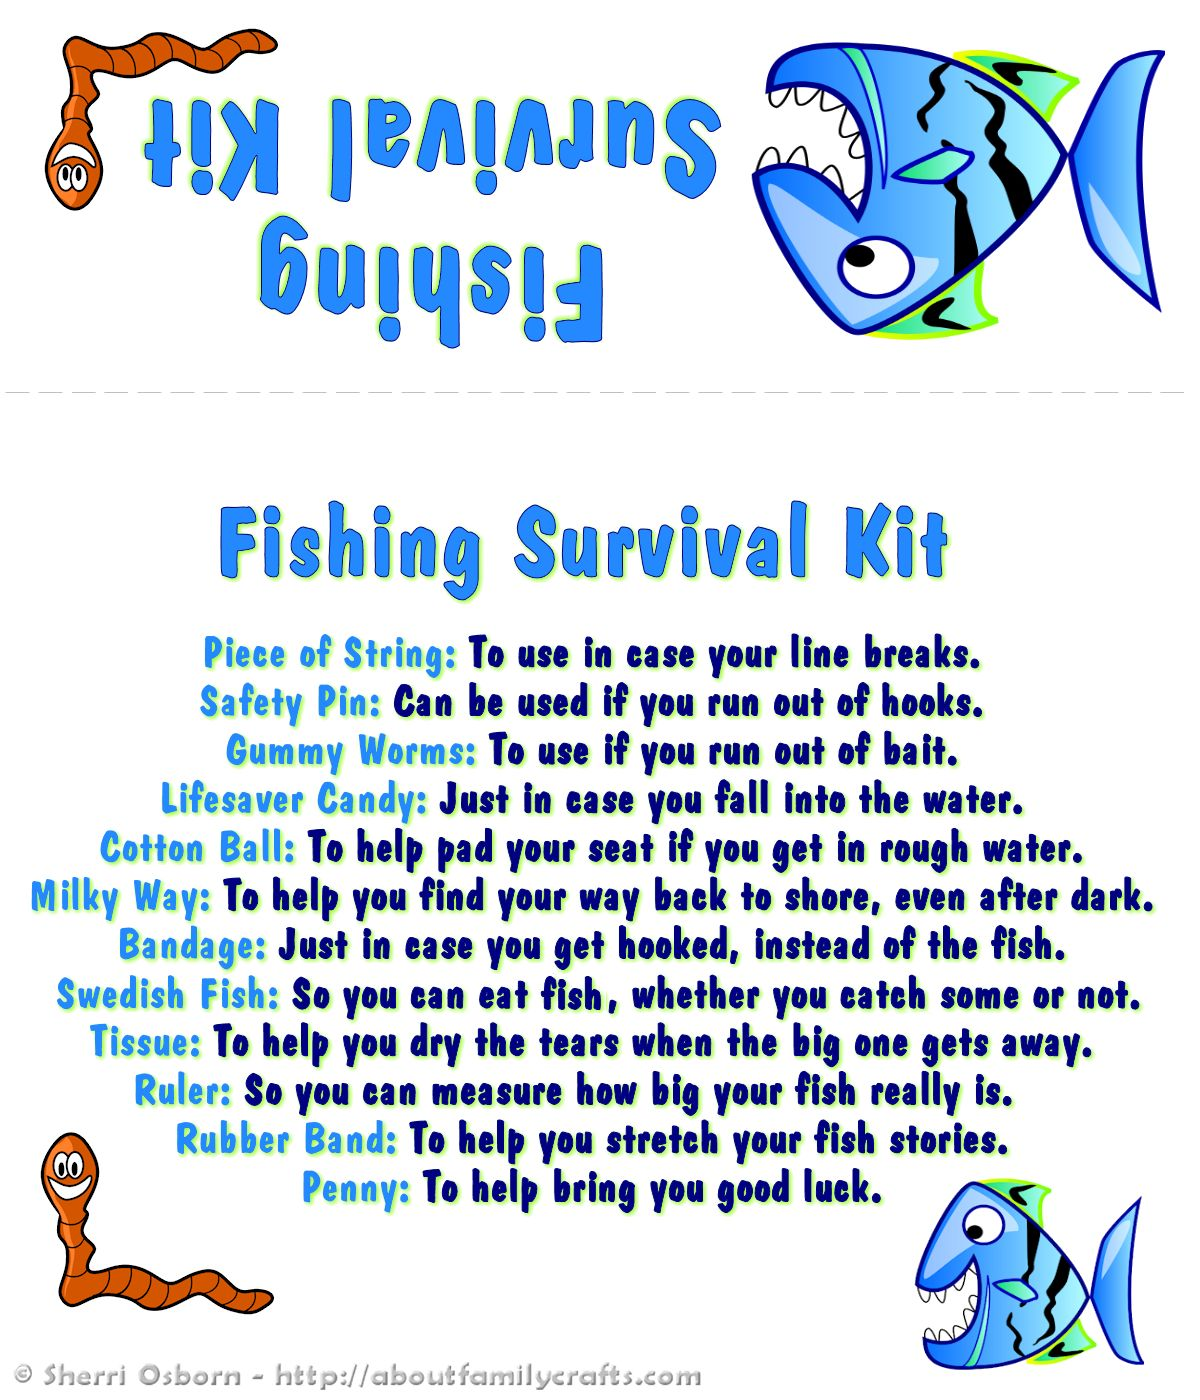 How to Make a Fishing Survival Kit | About Family Crafts